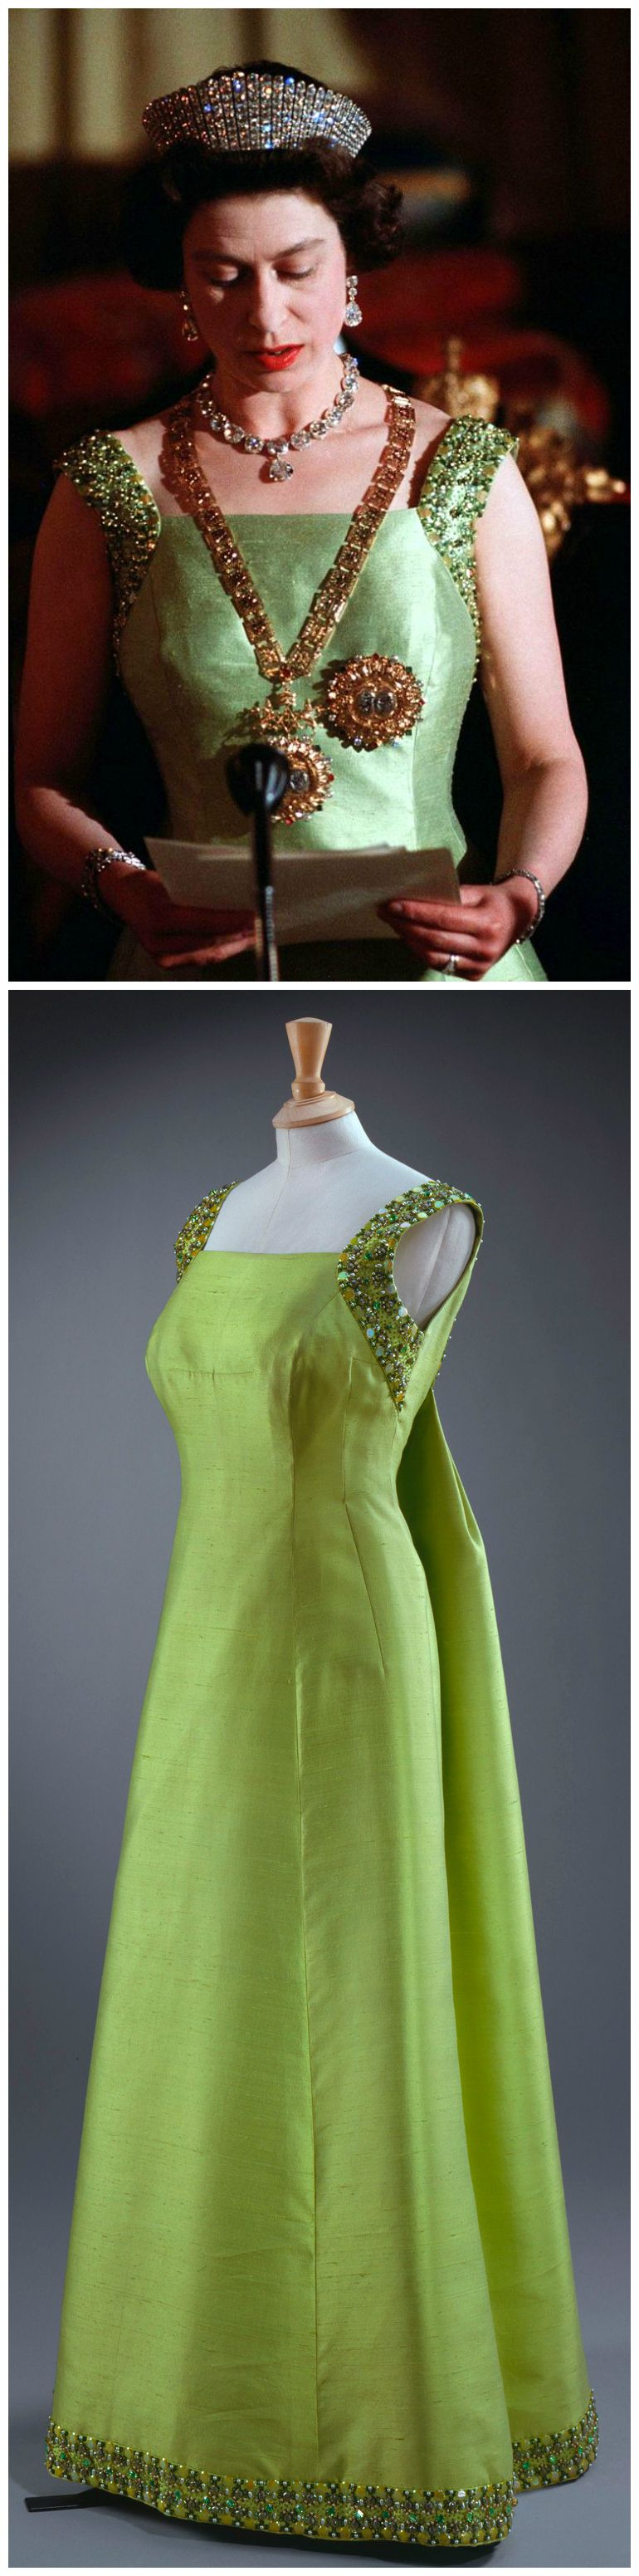 Queen elizabeth green dress  Evening gown by Sir Norman Hartnell  Silk embroidery and